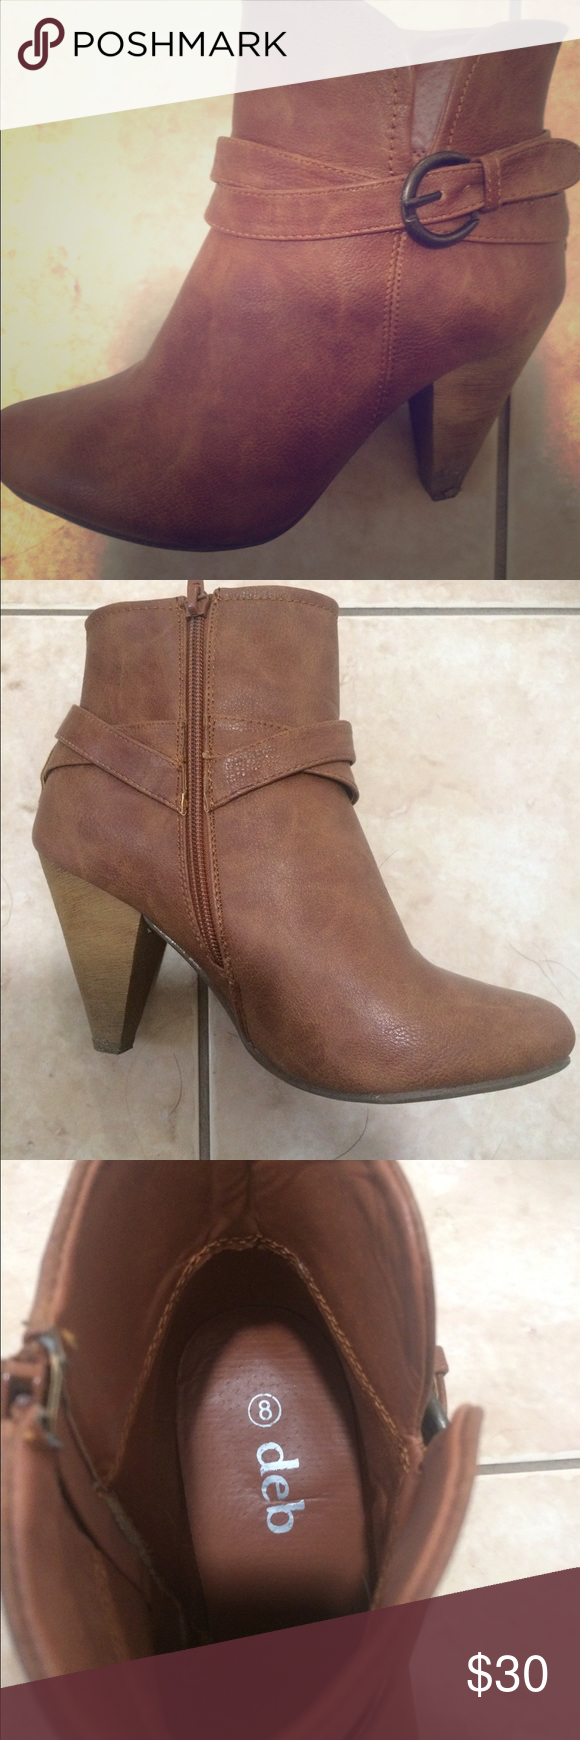 Brown faux leather booties Brown faux leather size 8 booties. Zip closure. Buckle and strap design. Worn once. Perfect condition. Faintest sign of the one time wear (see photo 4). Super cute and stylish. Deb Shoes Ankle Boots & Booties